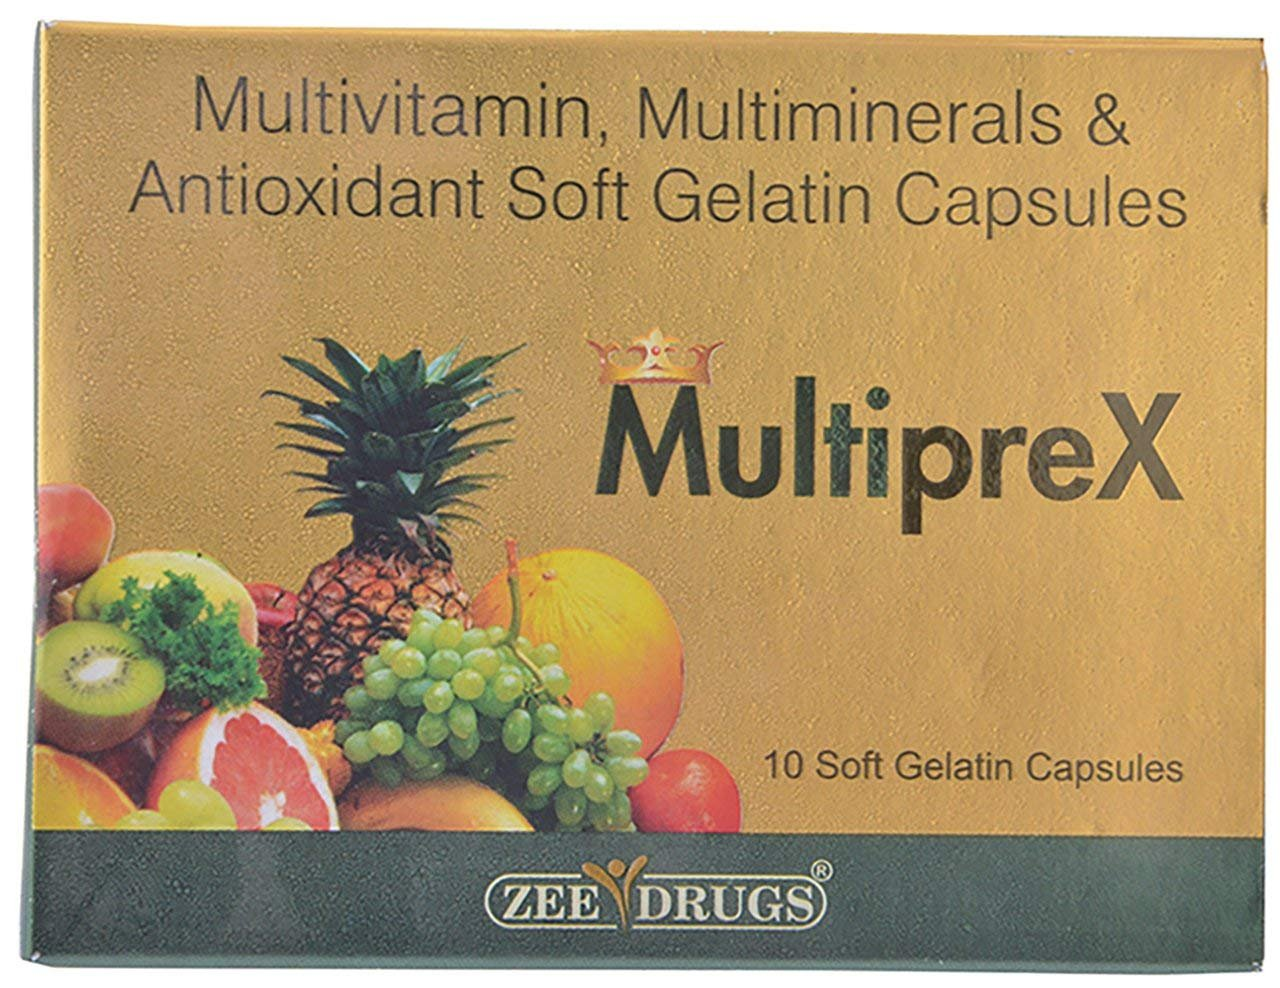 Amazon.com: MultiPreX 150 Caps - Multivitamin, Multimineral & Antioxidant Softgel Zee Pharma - Ayurveda: Health & Personal Care